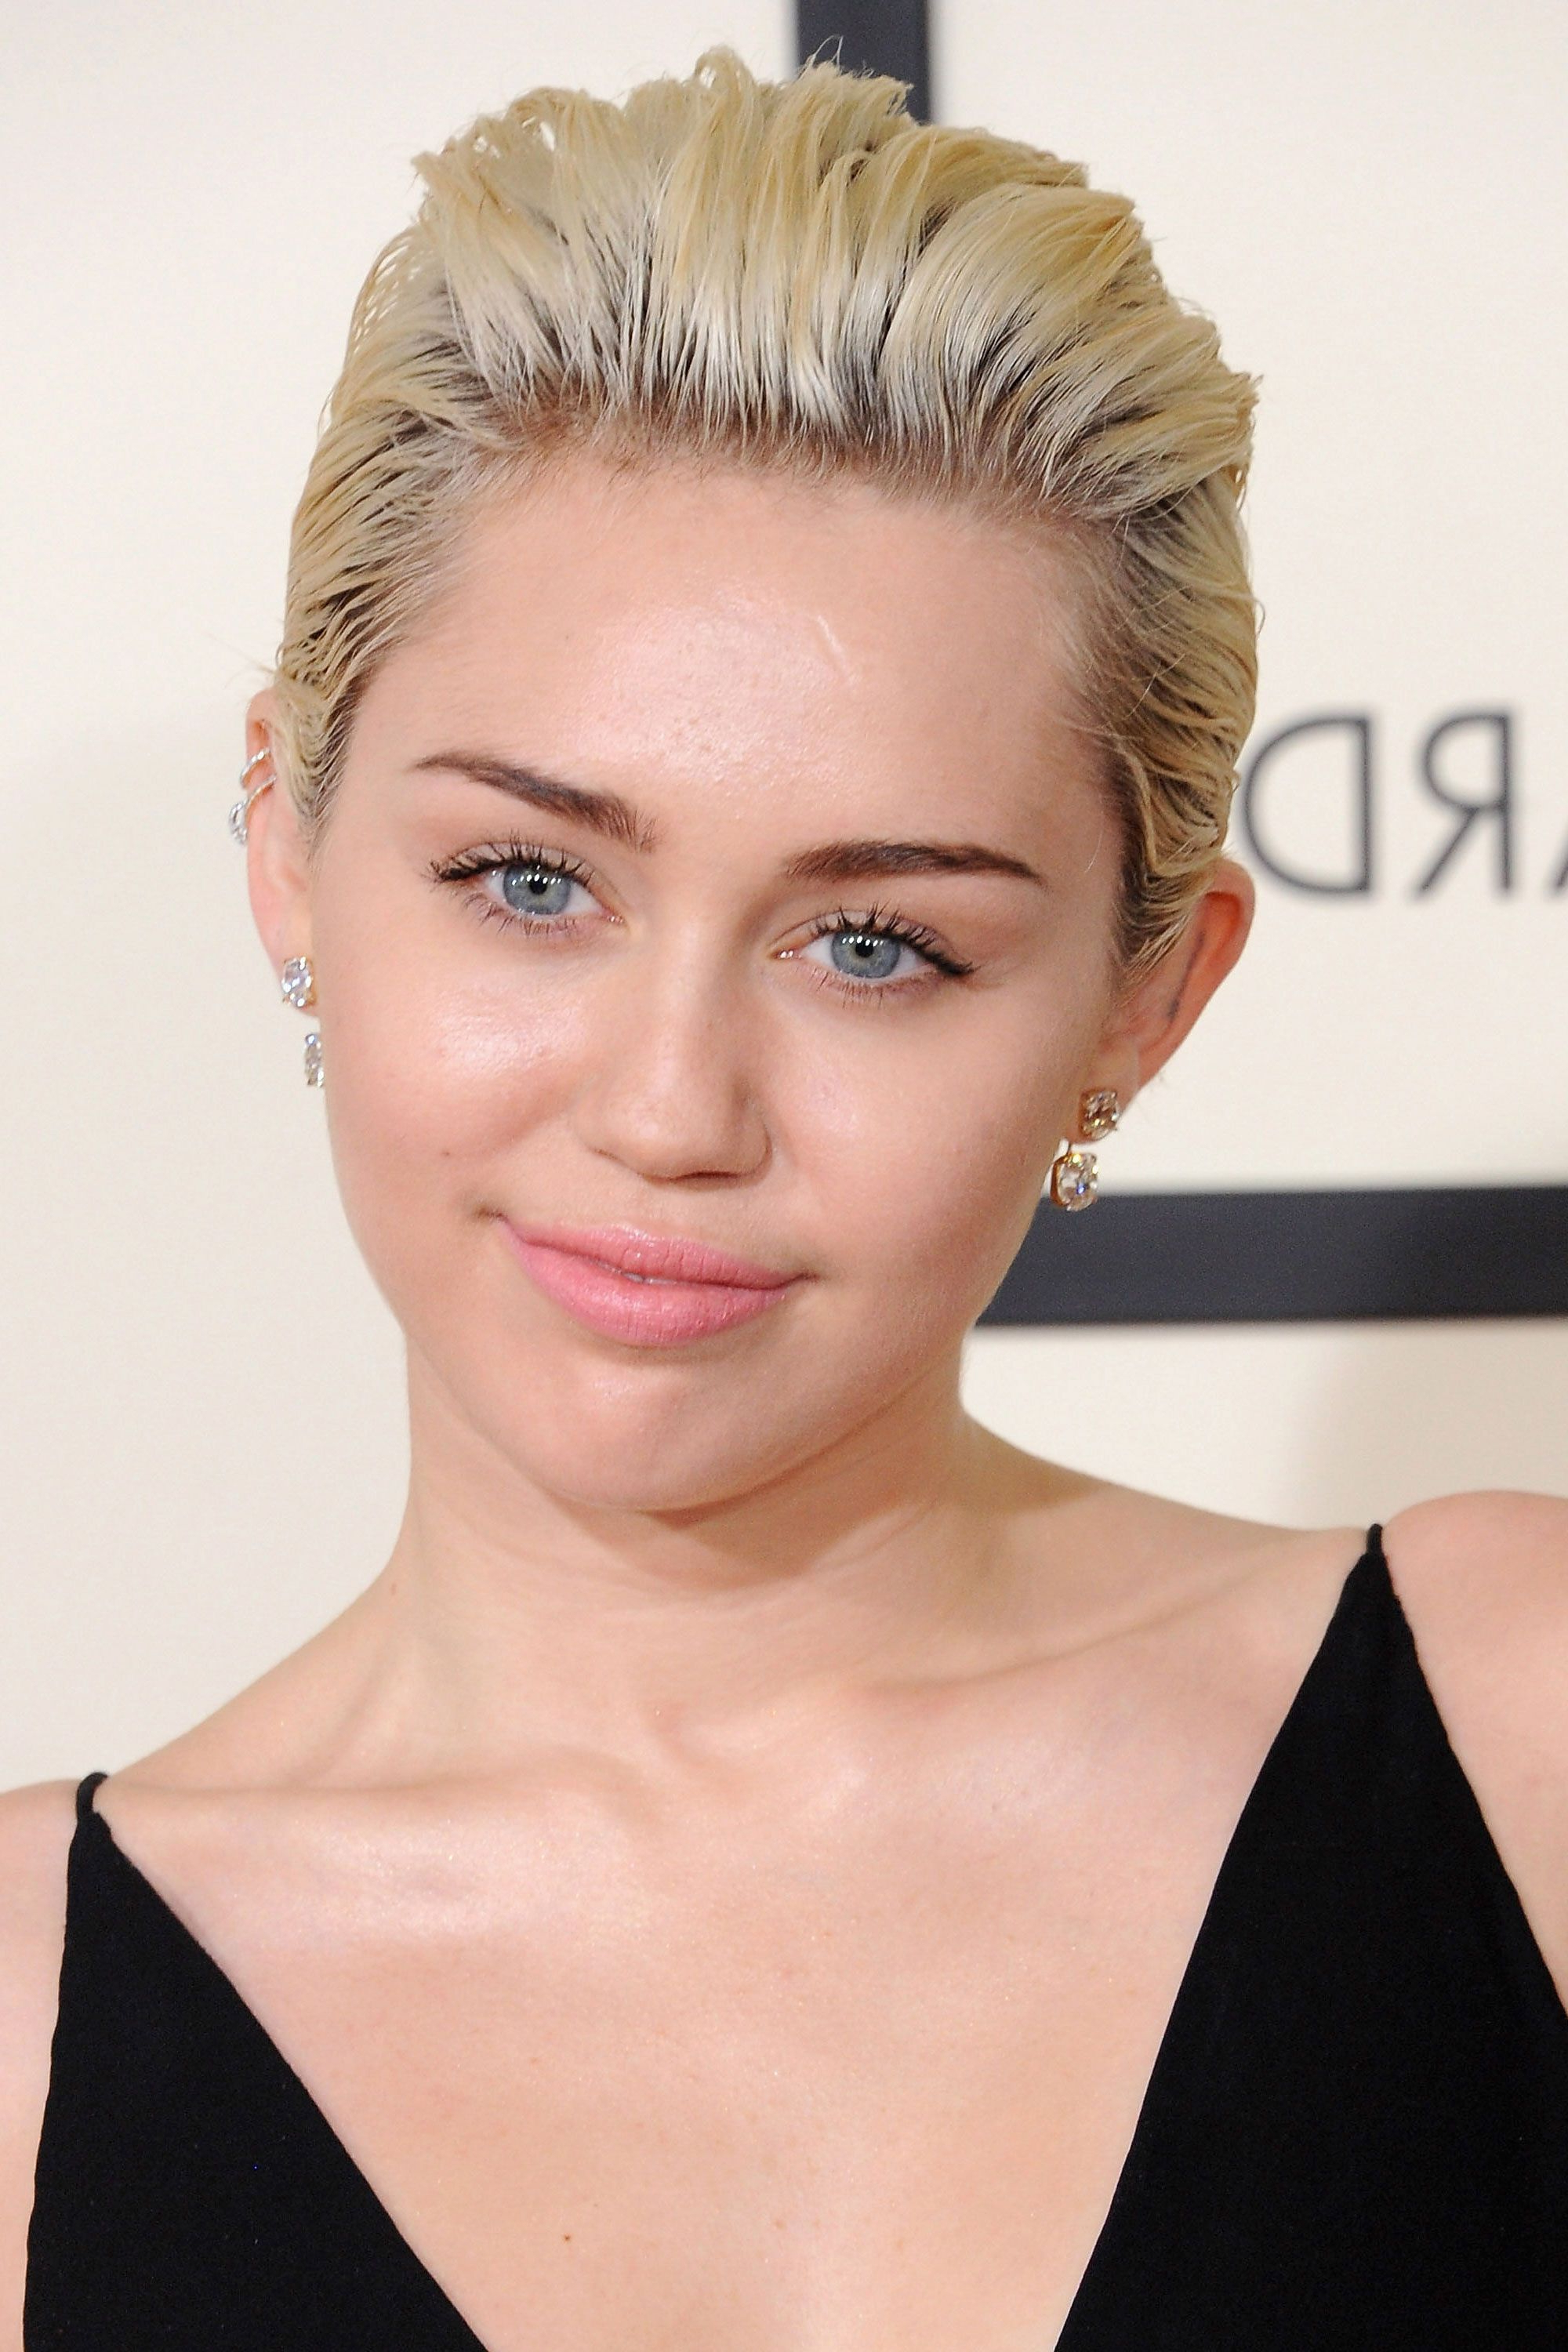 87 Cute Short Hairstyles & Haircuts – How To Style Short Hair Intended For Short Haircuts Like Miley Cyrus (Gallery 7 of 25)